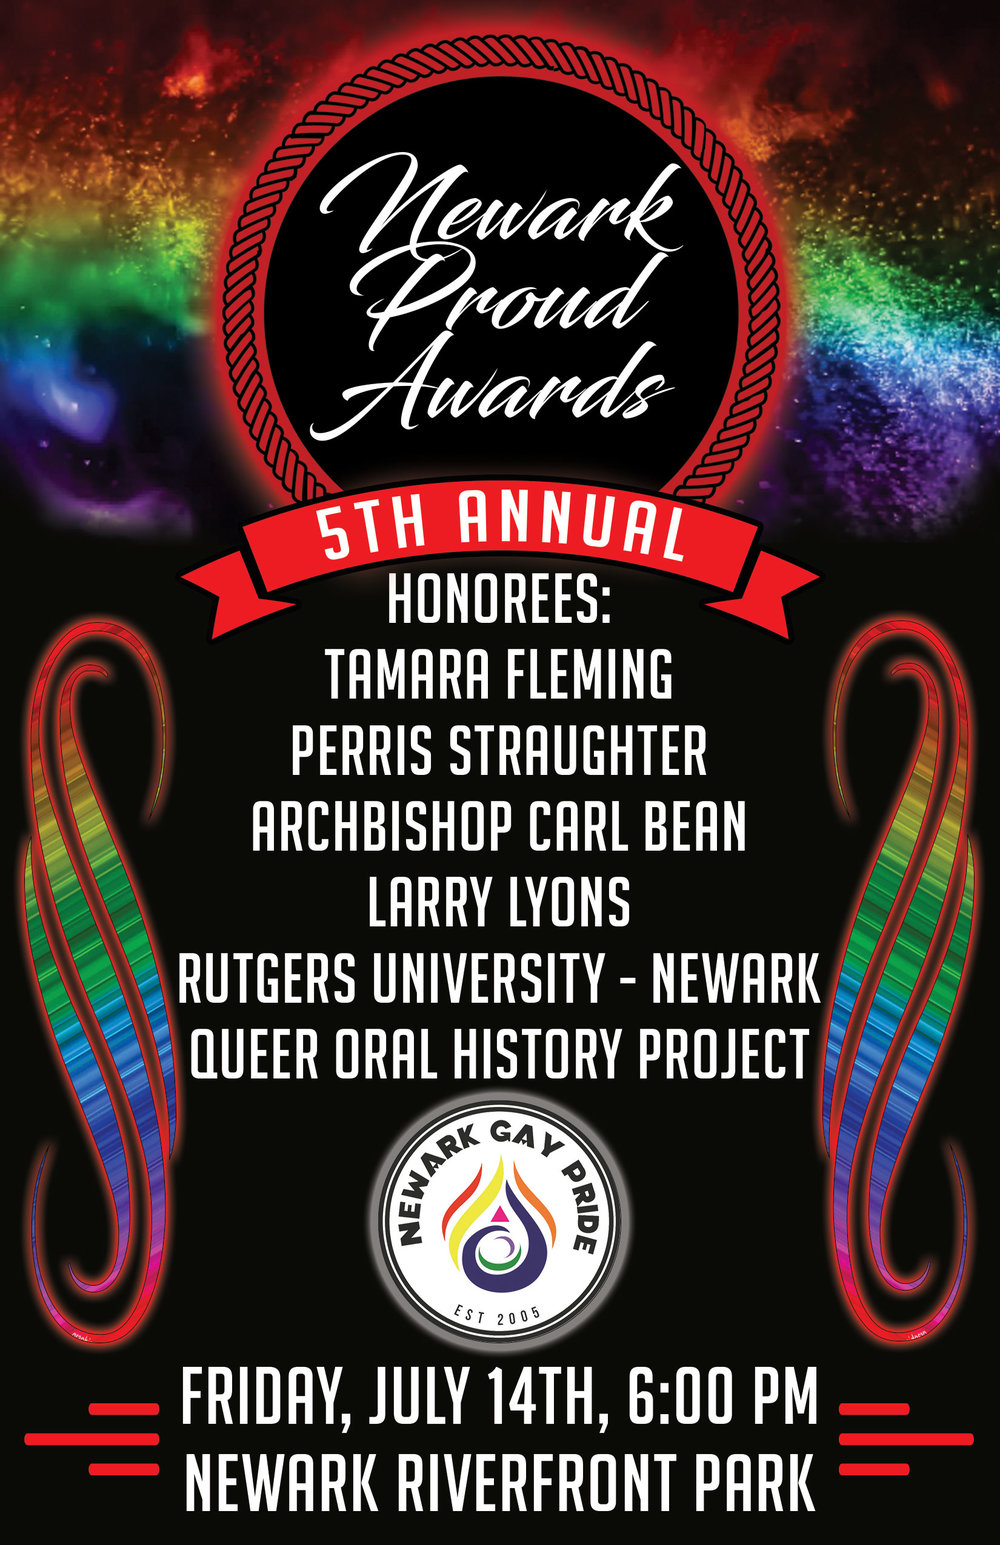 Friday, July 14th - 6pm - 9pmNewark Symphony Hall, Lobby (*location change)1020 Broad Street, Newark, NJNewark Pride Inc., Urban+Out and Circle of Friends acknowledge five truly inspiring and amazing honorees as we celebrate Newark Pride, excellence and service in our communities. Our 2017 honorees are:Archbishop Carl BeanLarry LyonsPerris StraughterTamara FlemingQueer Newark Oral History Project